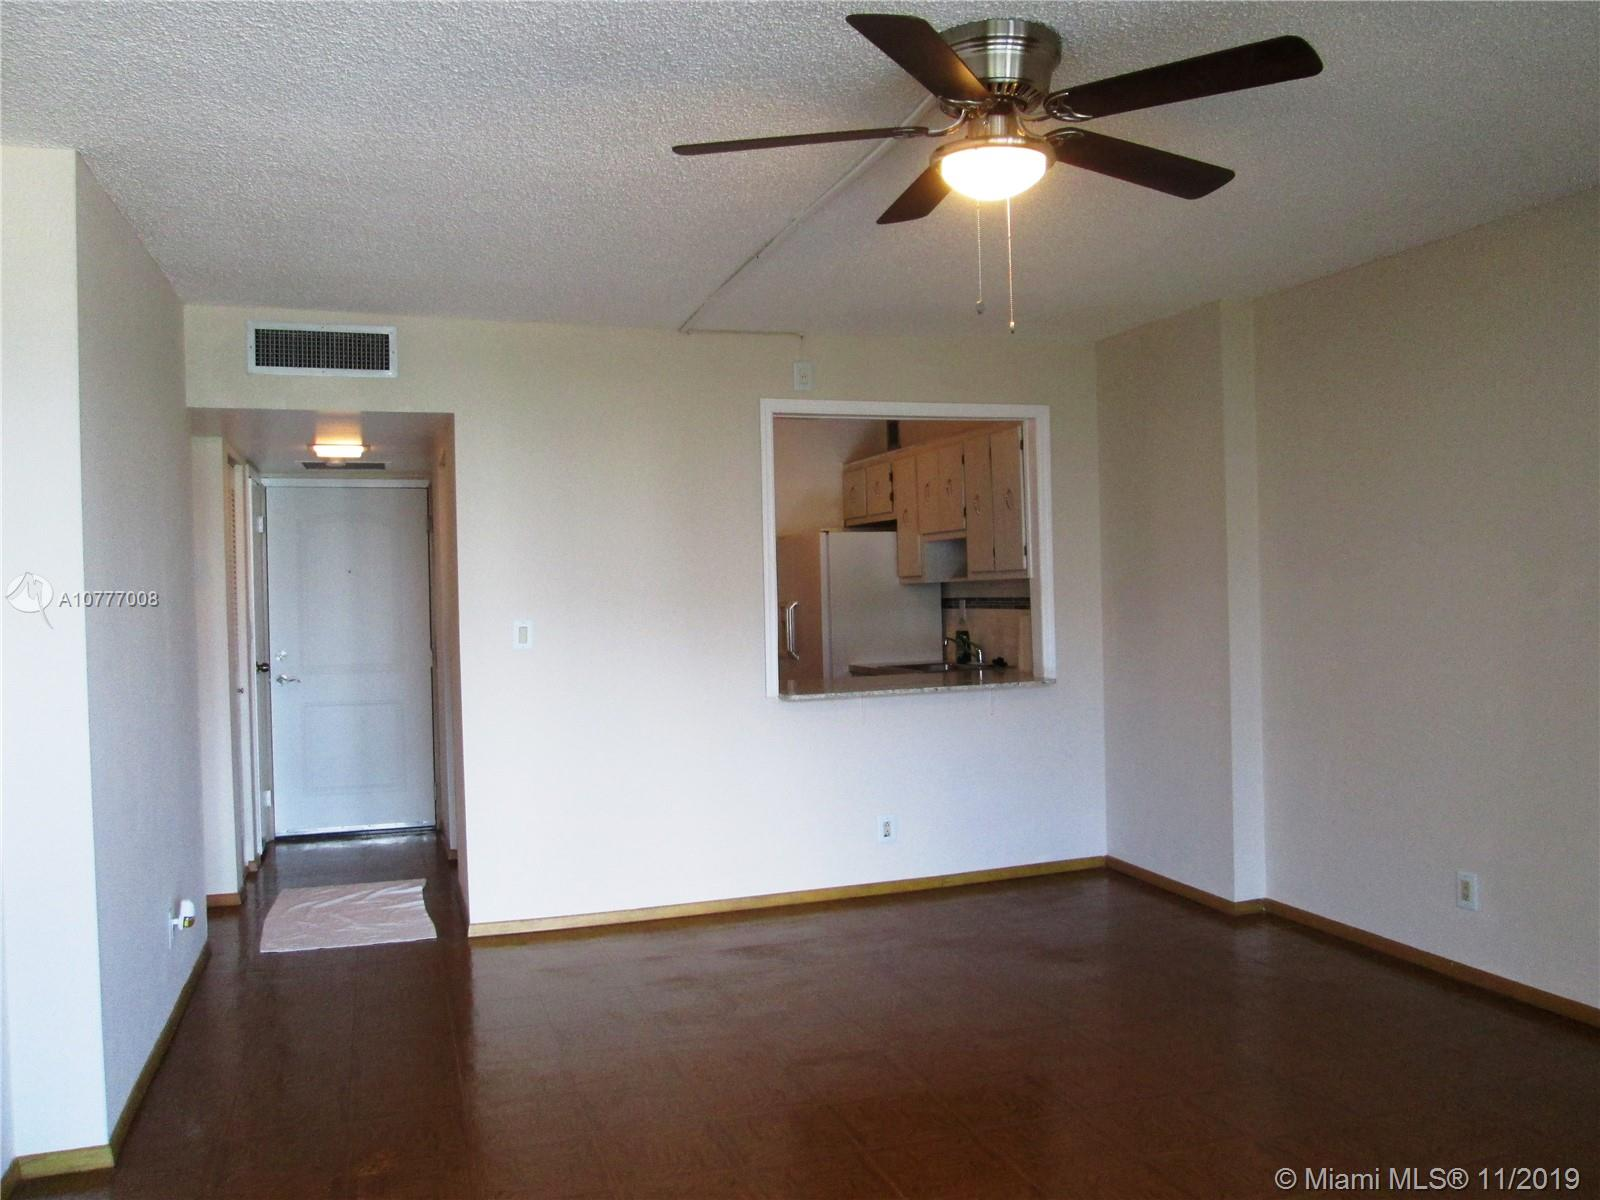 100 Bayview Dr # 530, Sunny Isles Beach, Florida 33160, 1 Bedroom Bedrooms, ,2 BathroomsBathrooms,Residential Lease,For Rent,100 Bayview Dr # 530,A10777008